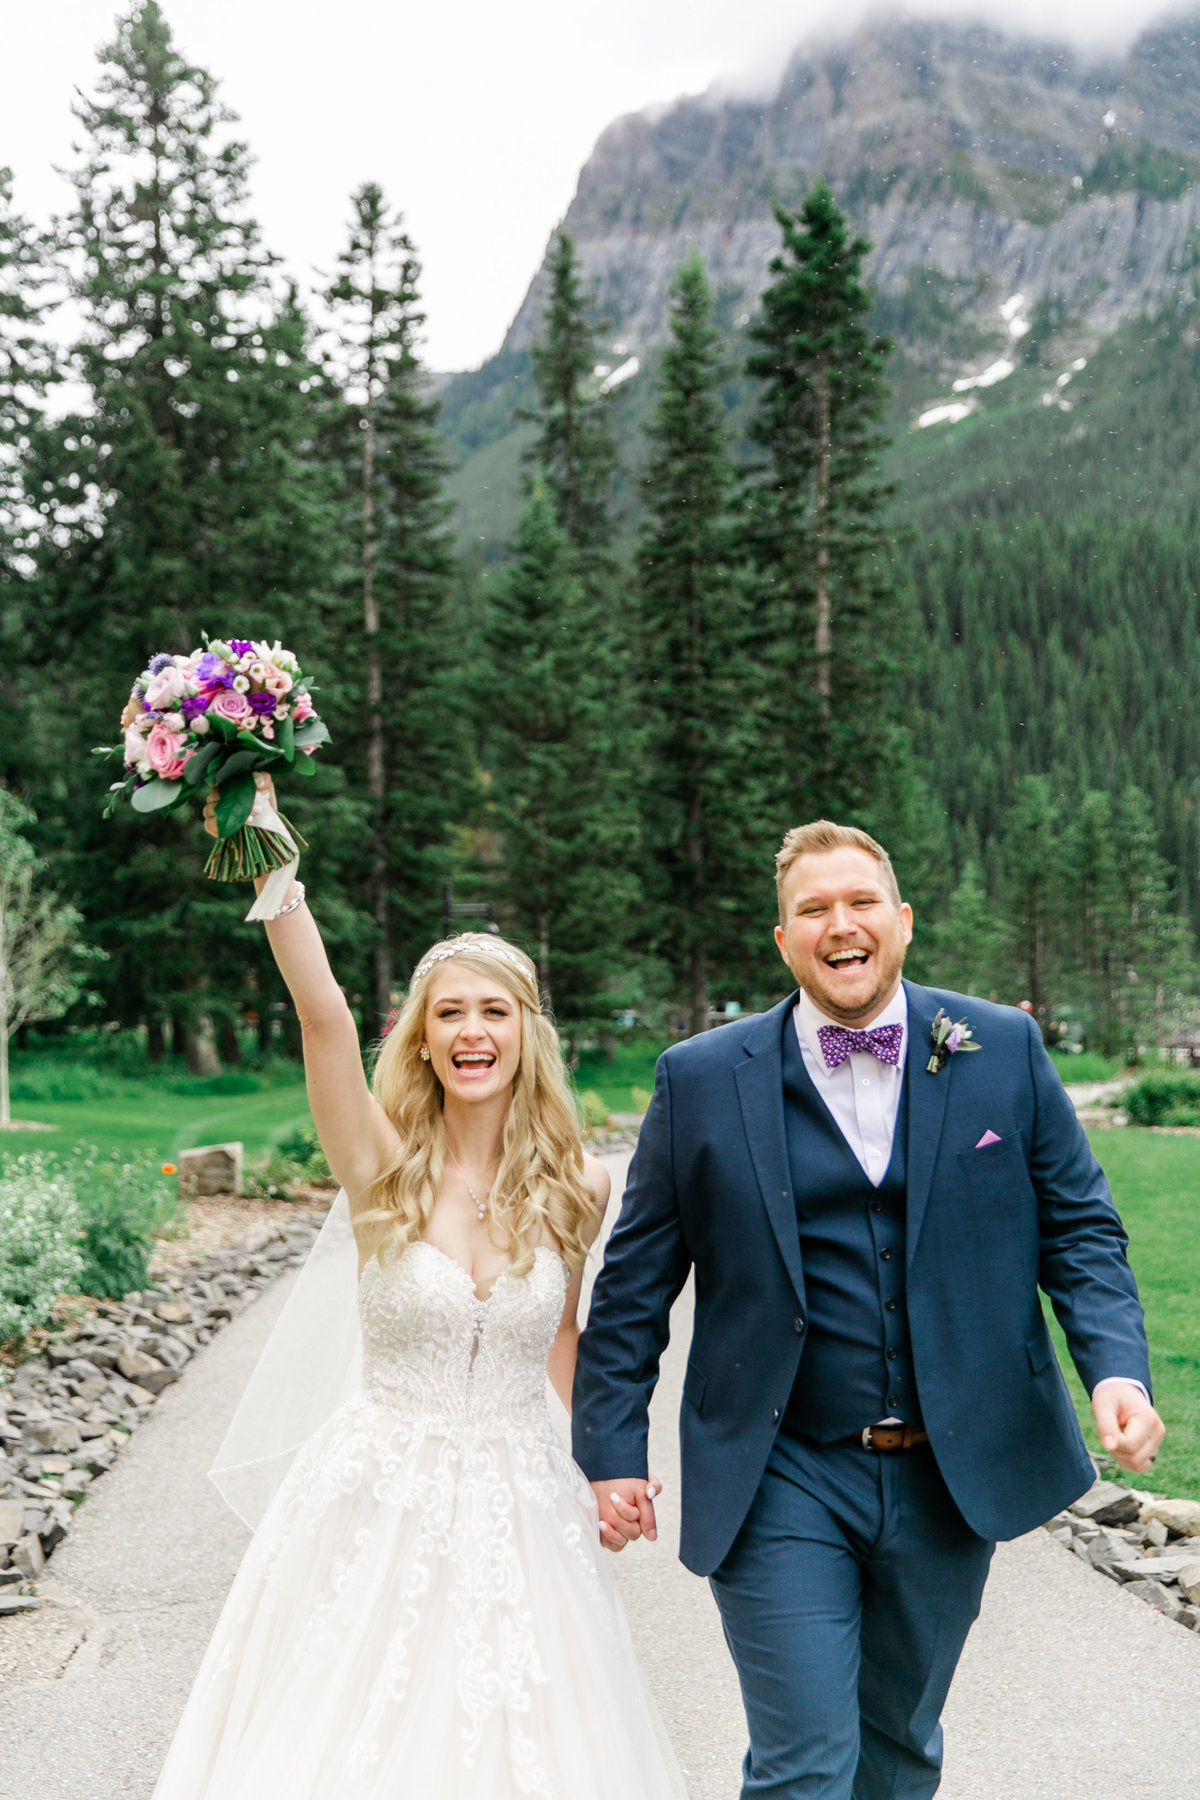 Karlie Colleen Photography - Fairmont Chateau Lake Louise Wedding - Banff Canada - Sara & Drew Forsberg-994